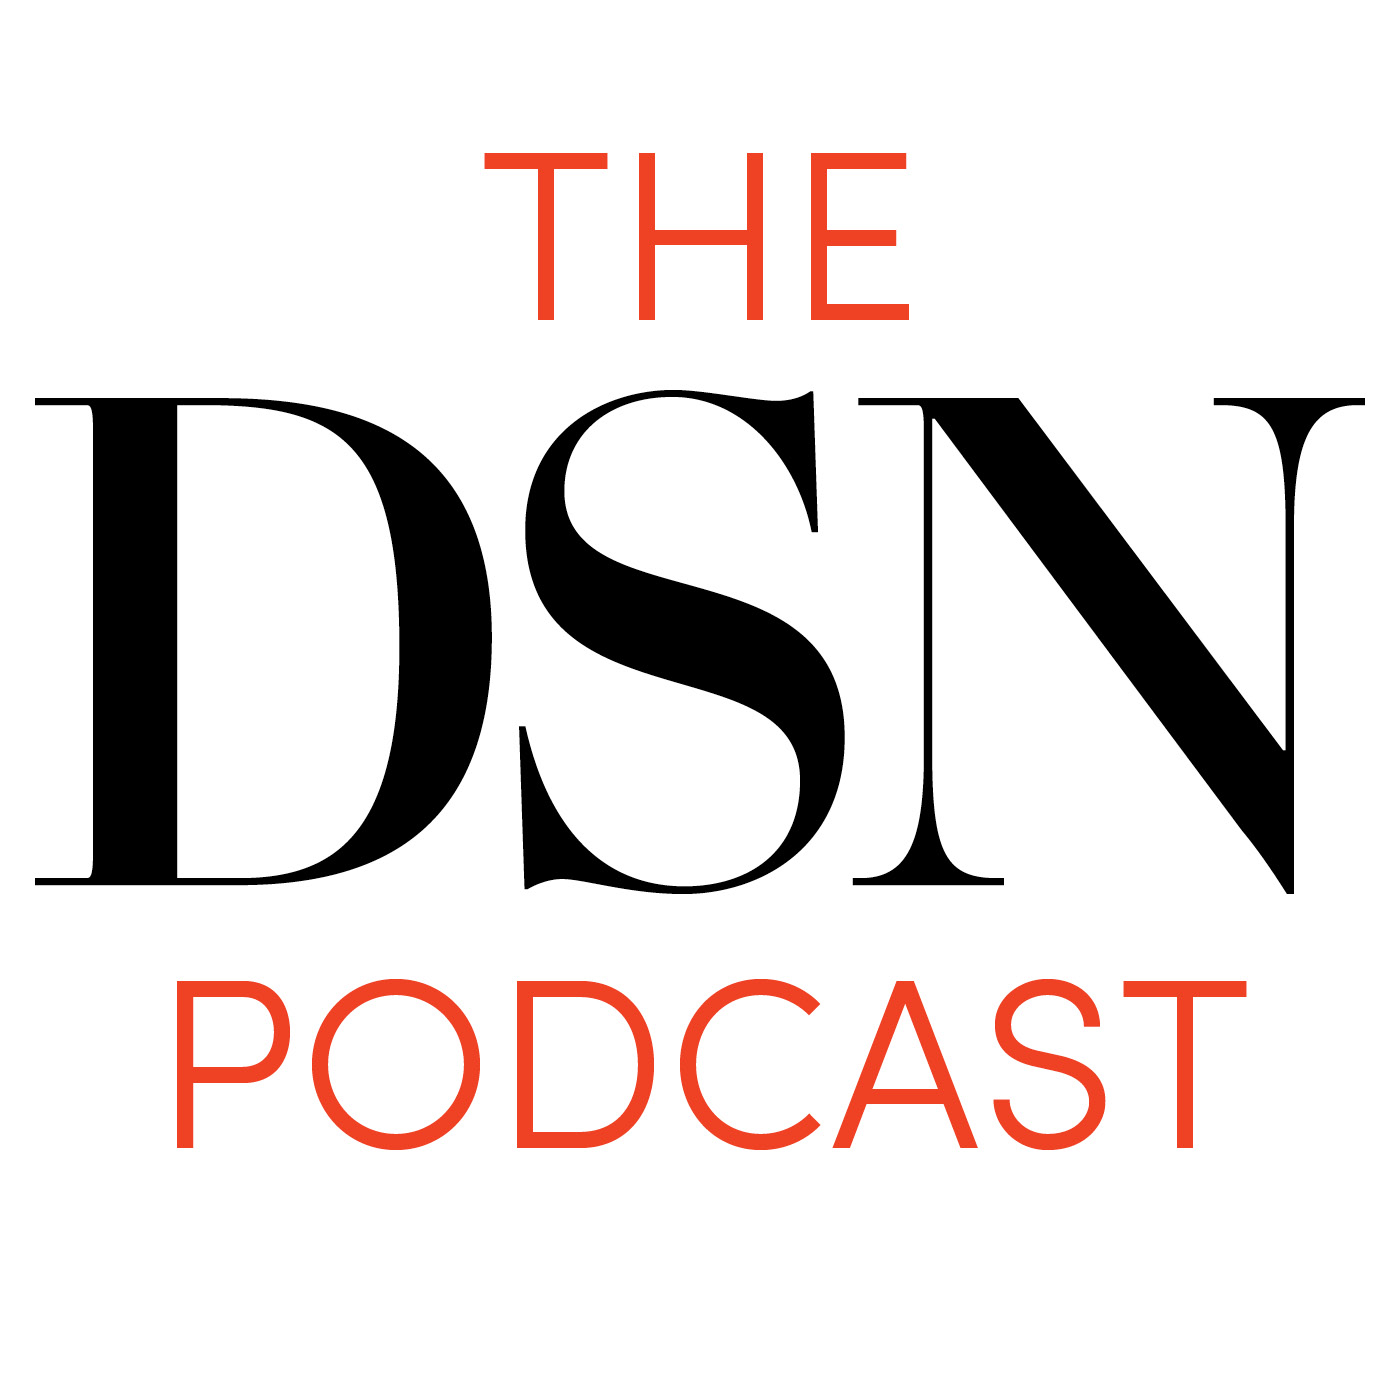 The Direct Selling News Podcast show art